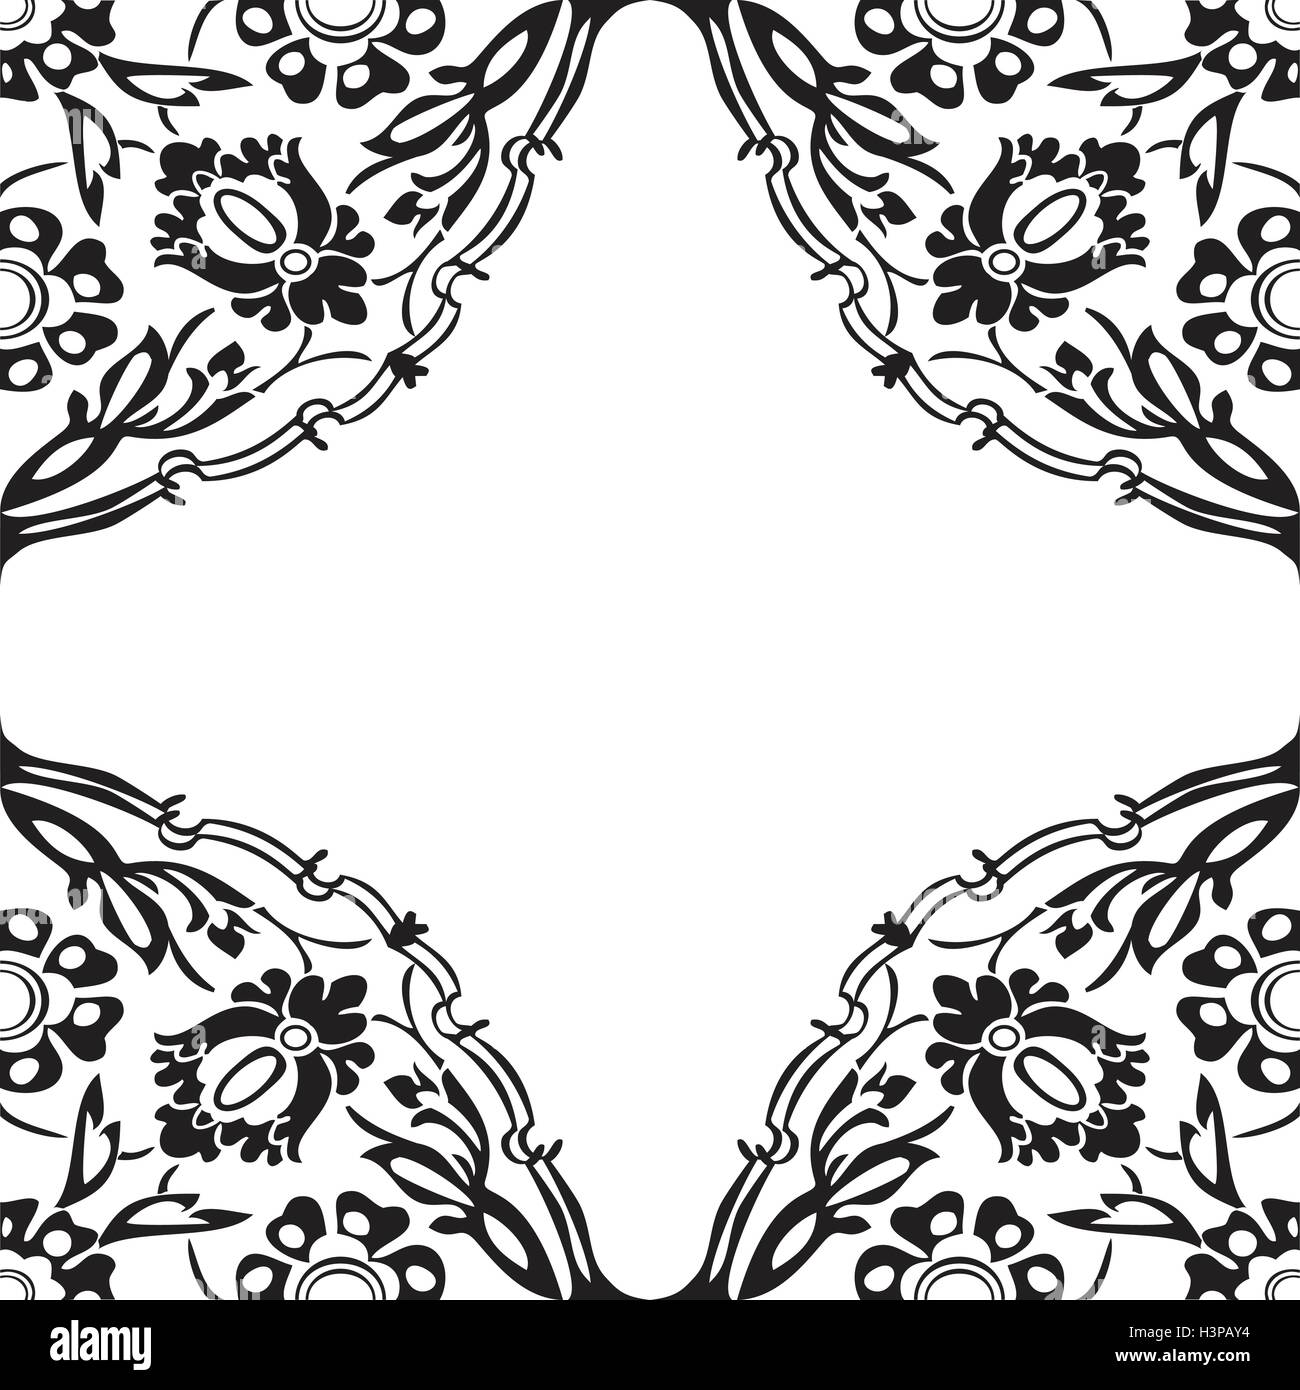 black and white round floral border corner abstract background vector stock vector image art alamy https www alamy com stock photo black and white round floral border corner abstract background vector 122808088 html